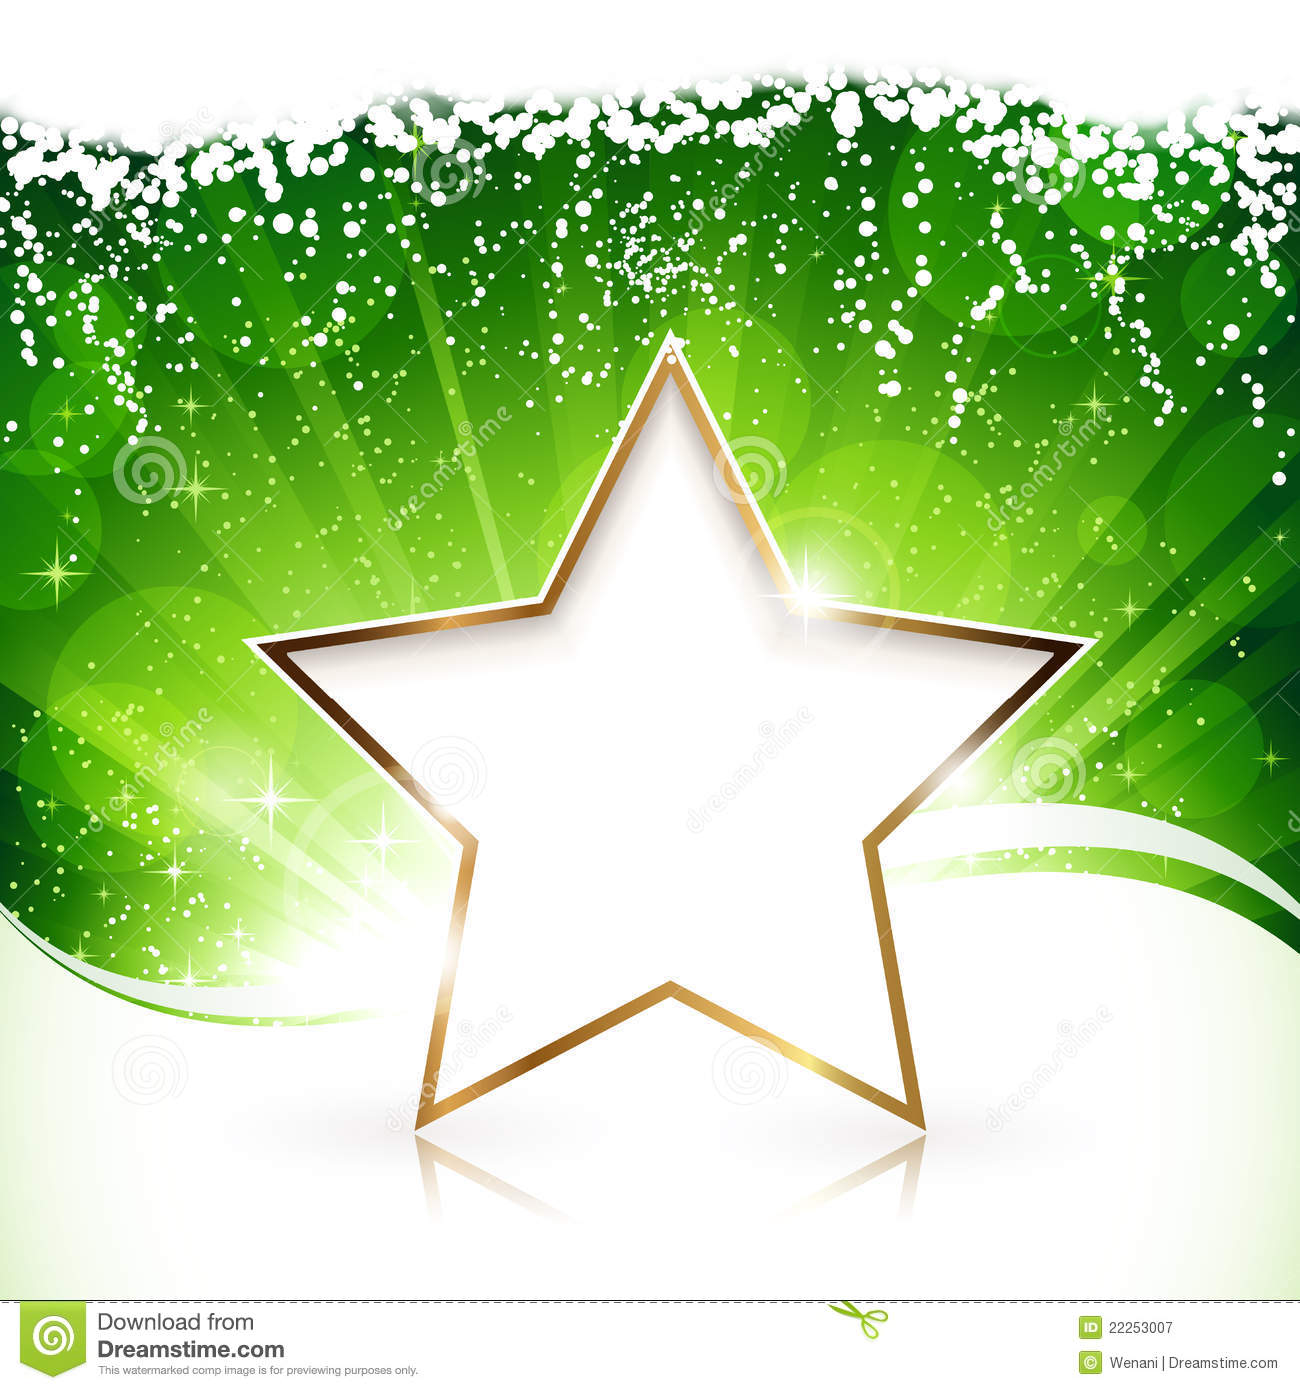 New 3d Animation Wallpaper Golden Christmas Star On Green Background Royalty Free